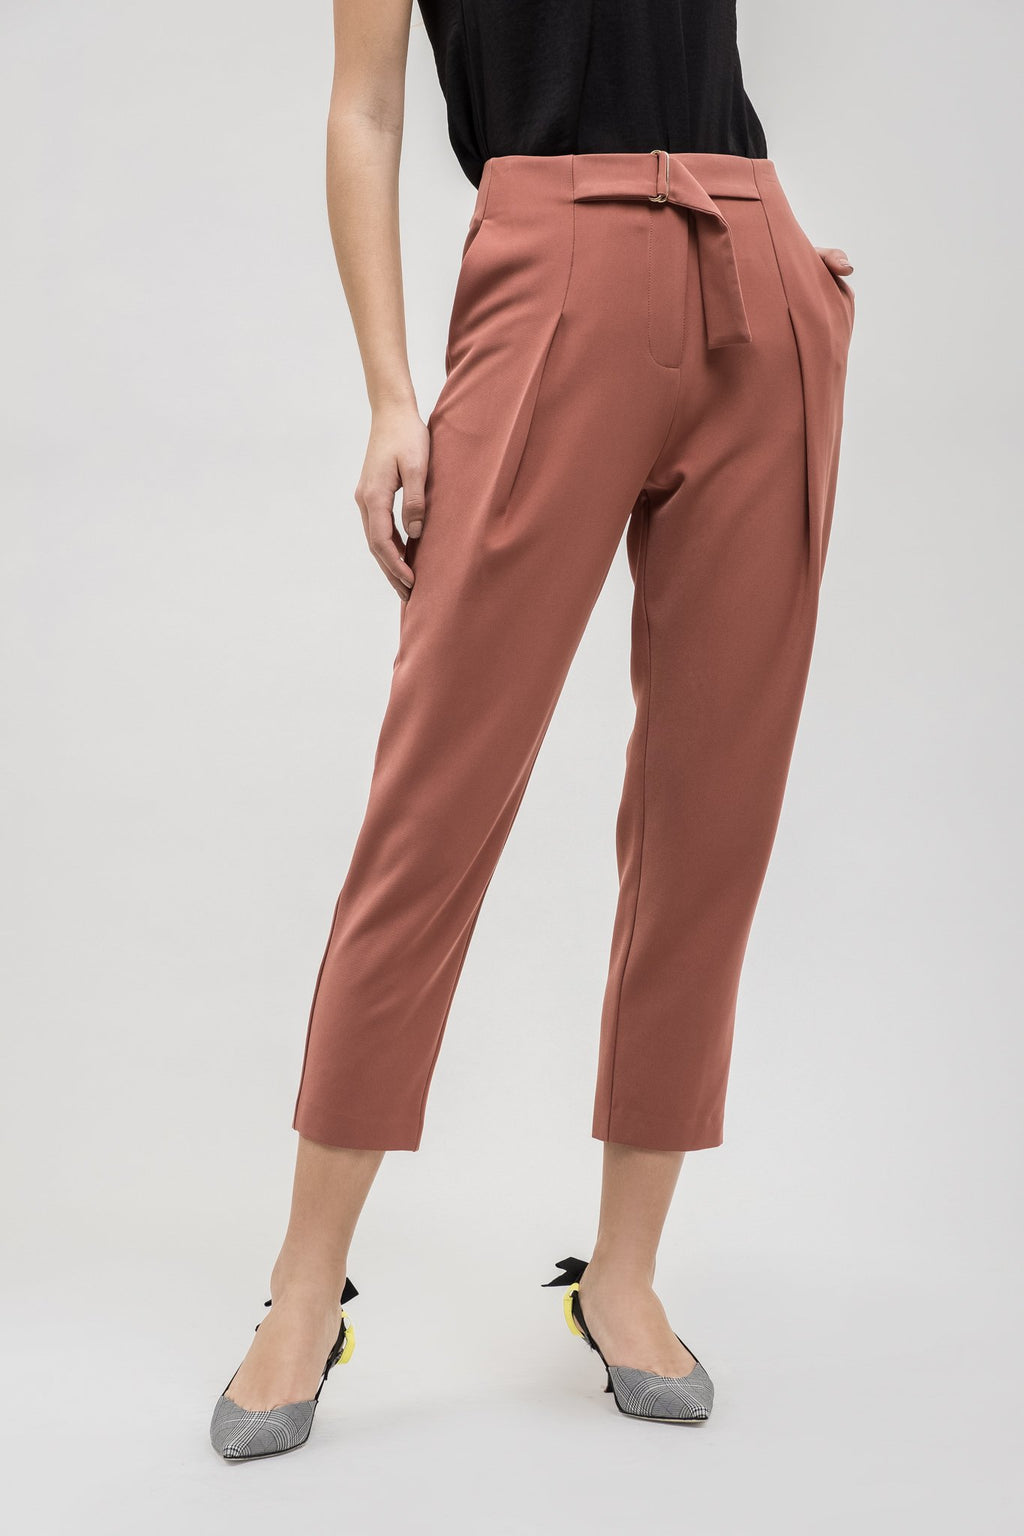 Belted waist trouser sien by J.O.A. cropped leg, rust colour, belt, pockets, blush and lace boutique, oakville, ontario, trendy.